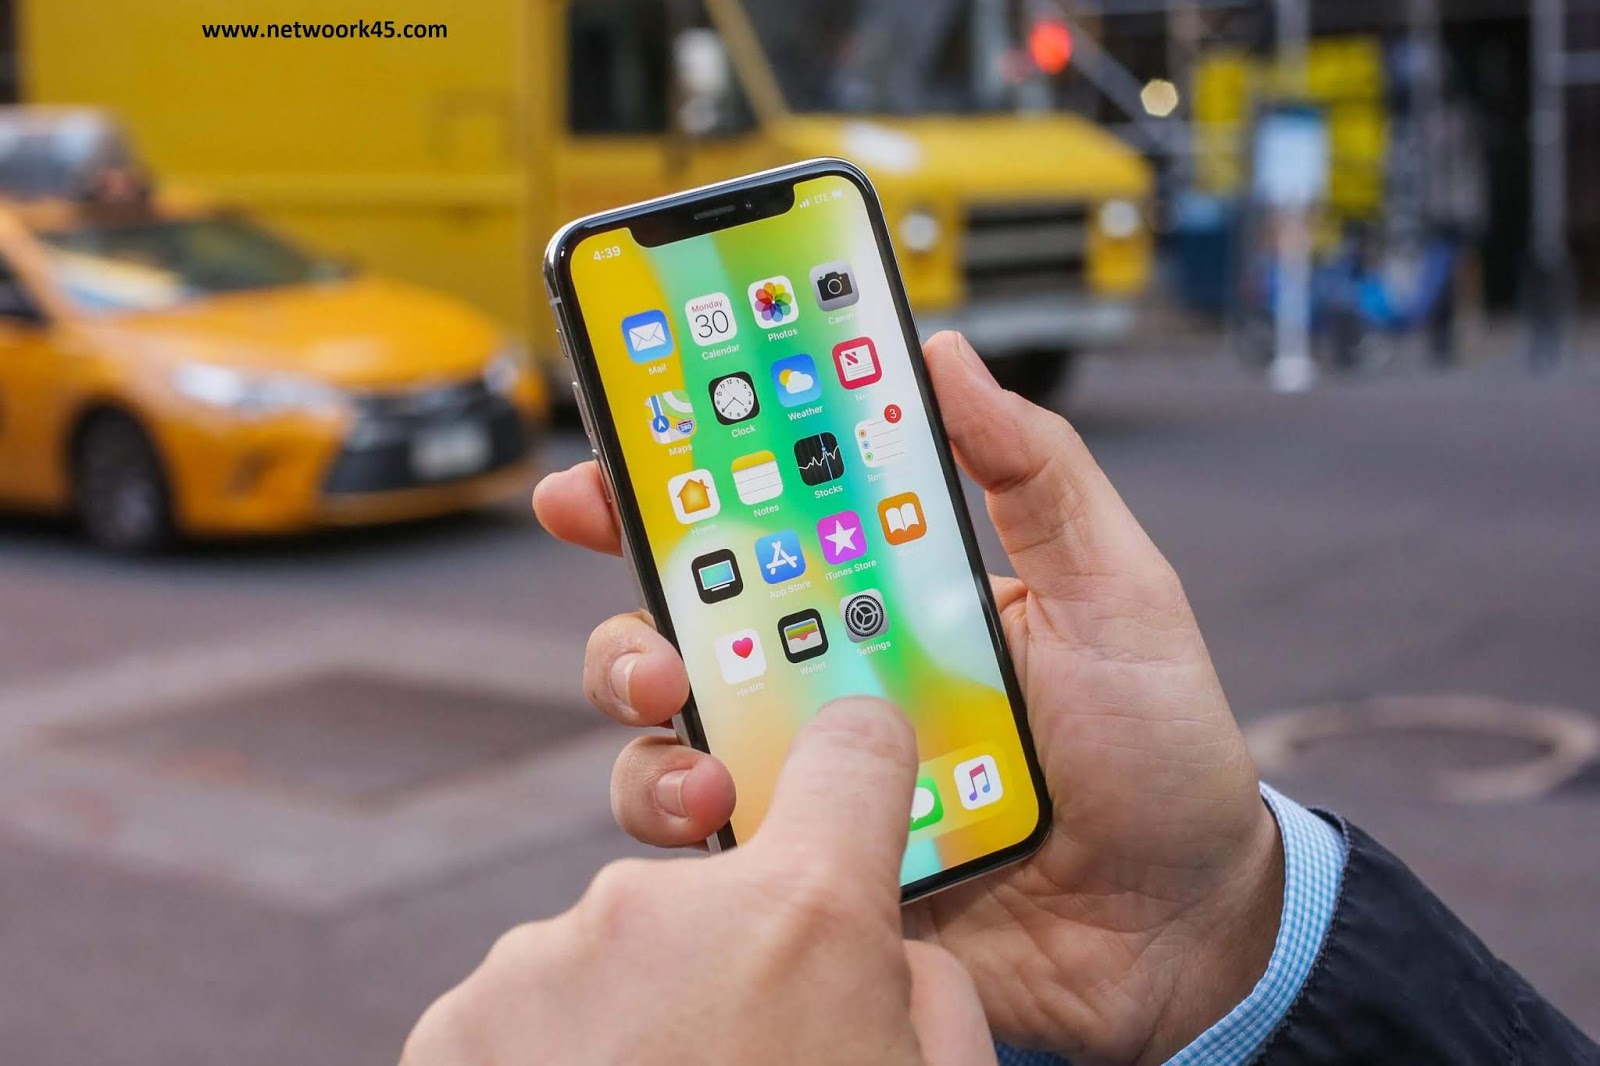 iphone x,face id,iphone x face id,face id iphone x,iphone,apple iphone x,iphone 10,face id test,iphone x review,face id twins,iphone x unboxing,face id vs touch id,face id fail,face id iphone,apple face id,face id iphone 8,face id iphone 10,iphone 8,face,face id review,iphone face id,new iphone,faceid,apple iphone,review iphone x,face id demo,face id twins test,face id hack